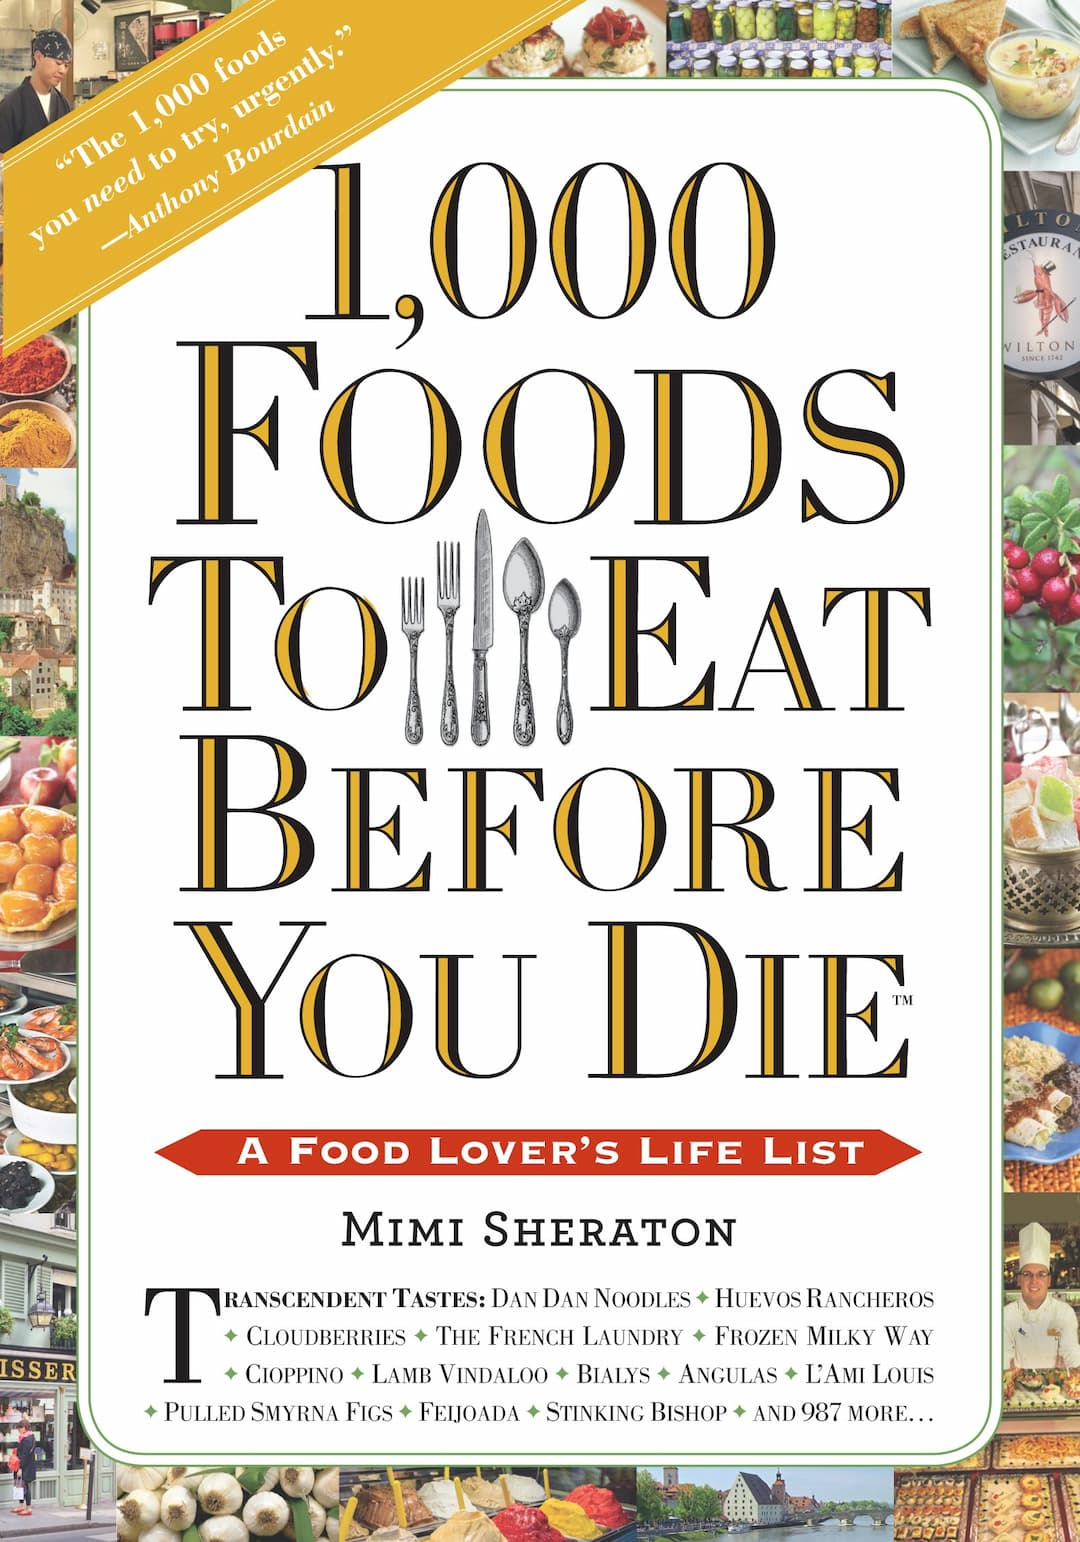 000 Foods, 000 Foods To Eat Before You Die, 1, Cooking, health & food, Mimi Sheraton, Nonfiction, Recipe